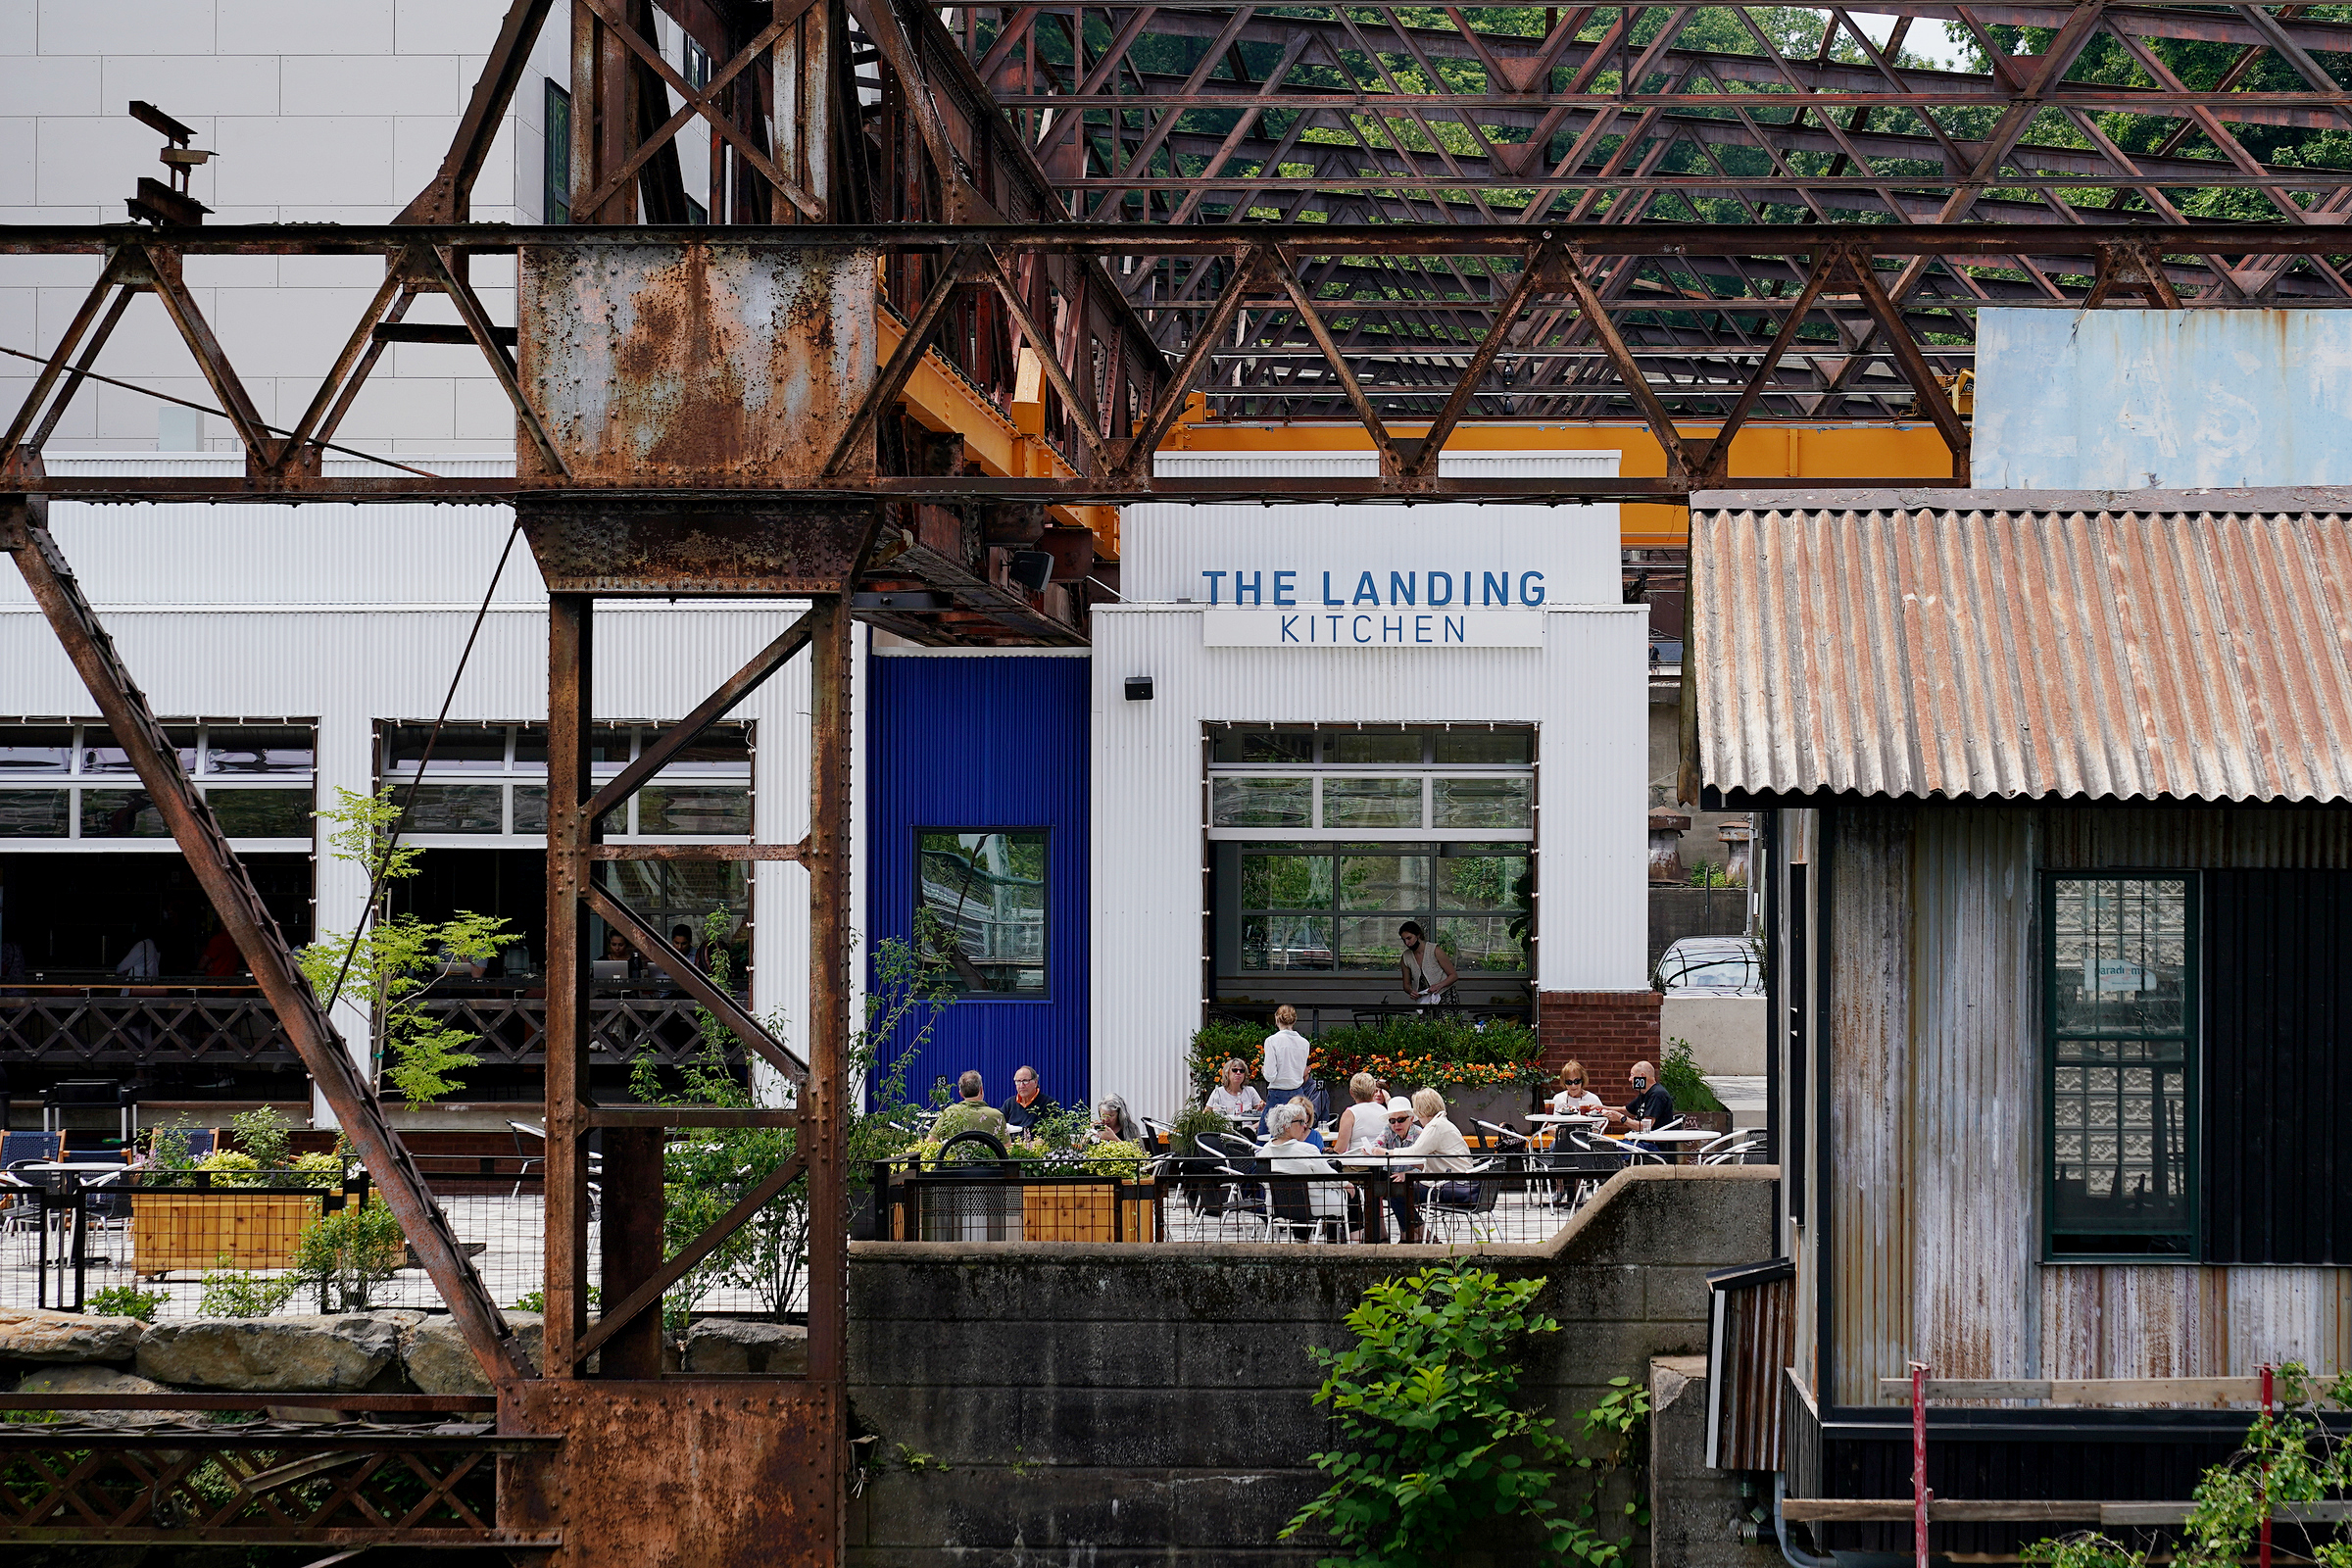 People eat at The Landing Kitchen restaurant at the Ironworks at Pencoyd Landing in Bala Cynwyd, Pa., on Wednesday, June 2, 2021. The new development, which opened earlier this year with a restaurant and hotel, is located on the site of the former Pencoyd Iron Works along the Schuylkill.